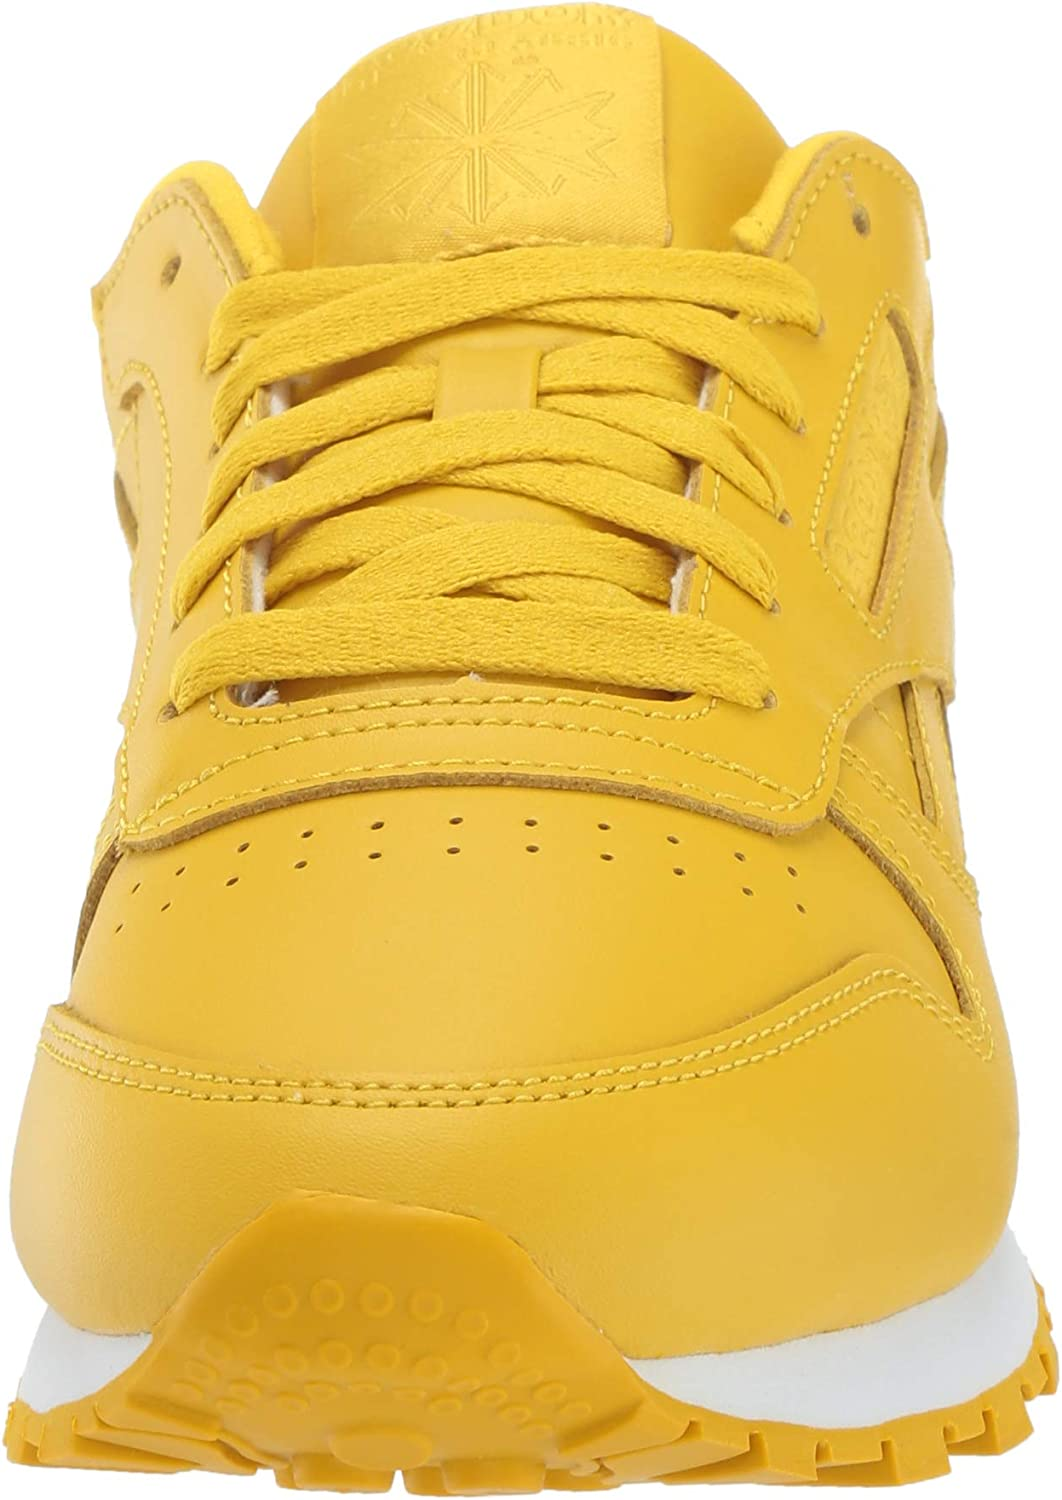 Reebok - Classic Leather L Baskets Basses Femme Urbain Jaune Blanc